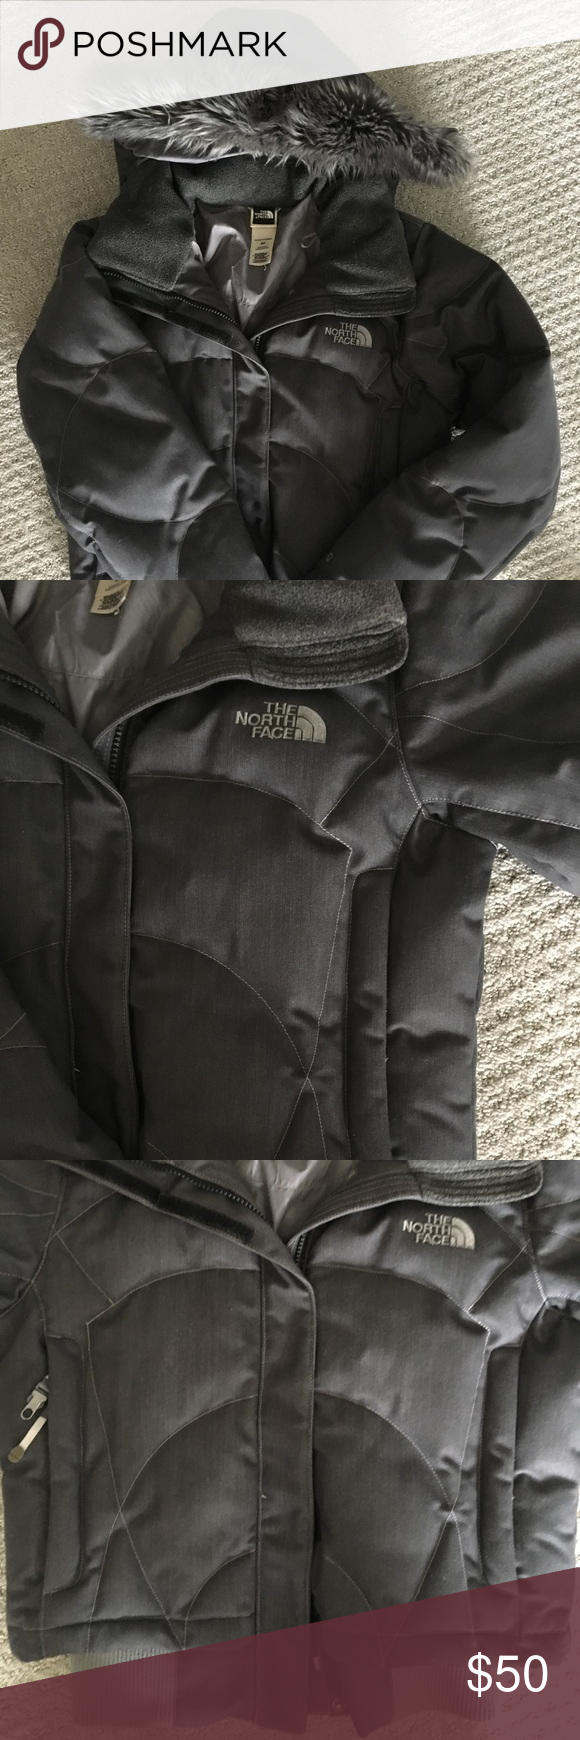 Cropped North Face Jacket North Face Jacket The North Face Jackets [ 1740 x 580 Pixel ]